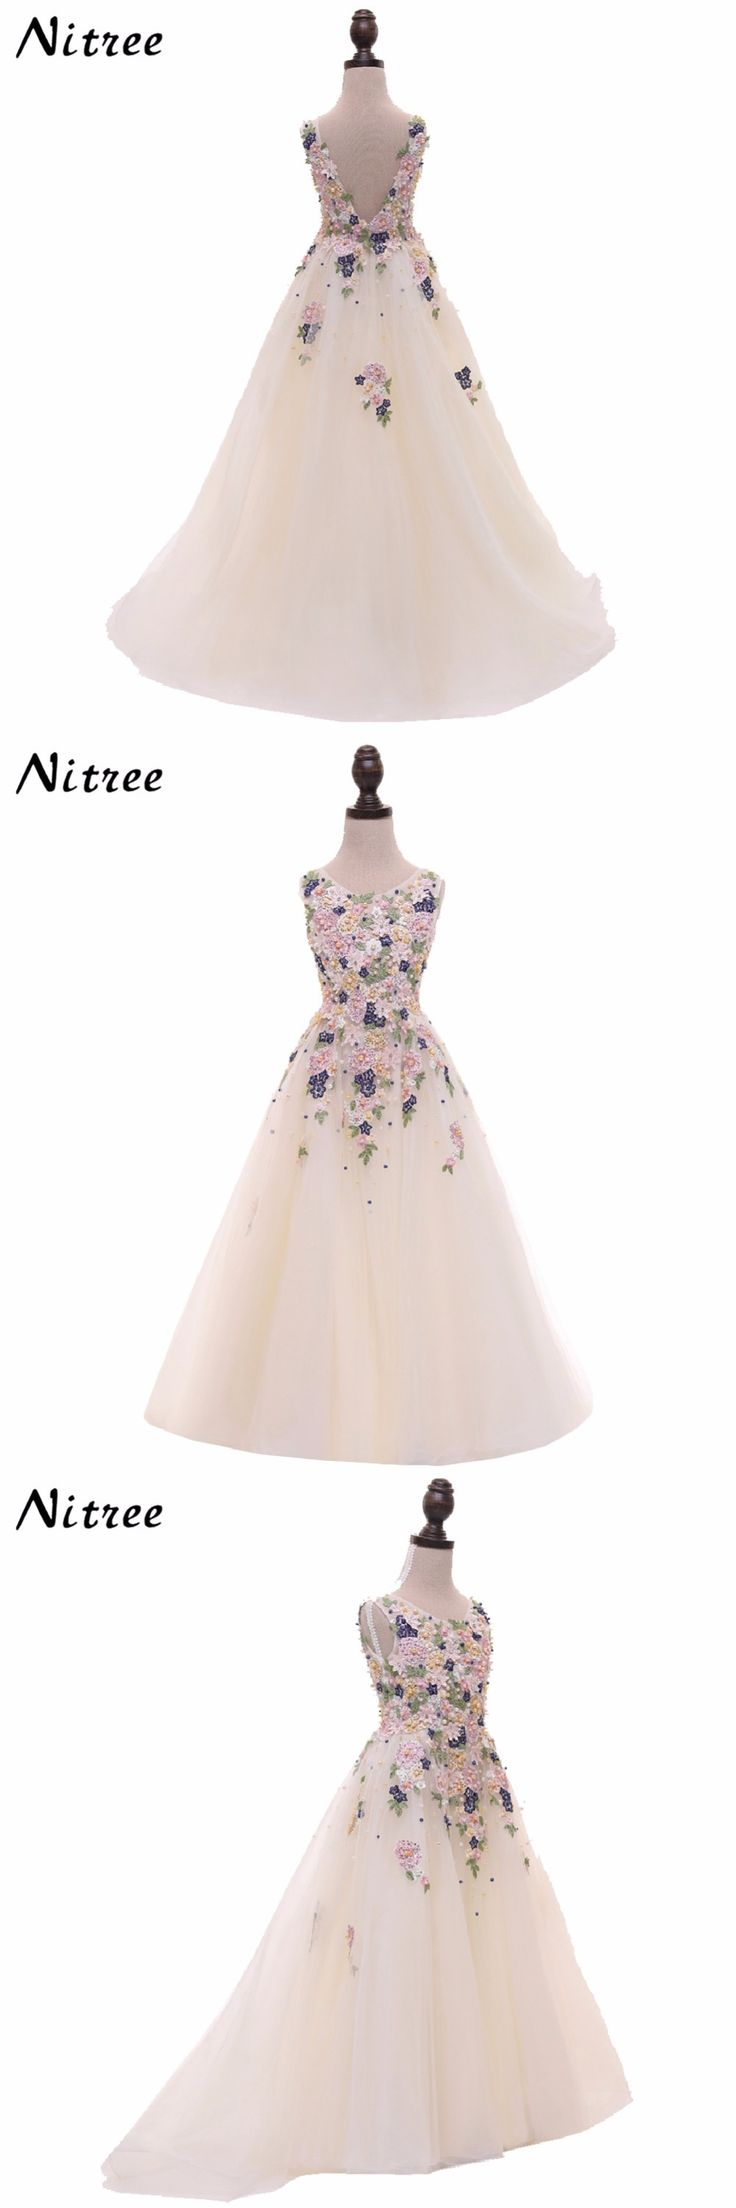 Colorful Flower Girl Dresses For Weddings 2017 Ball Gown Kids Evening Gowns Graduation First Communion Dresses For Girls Glitz